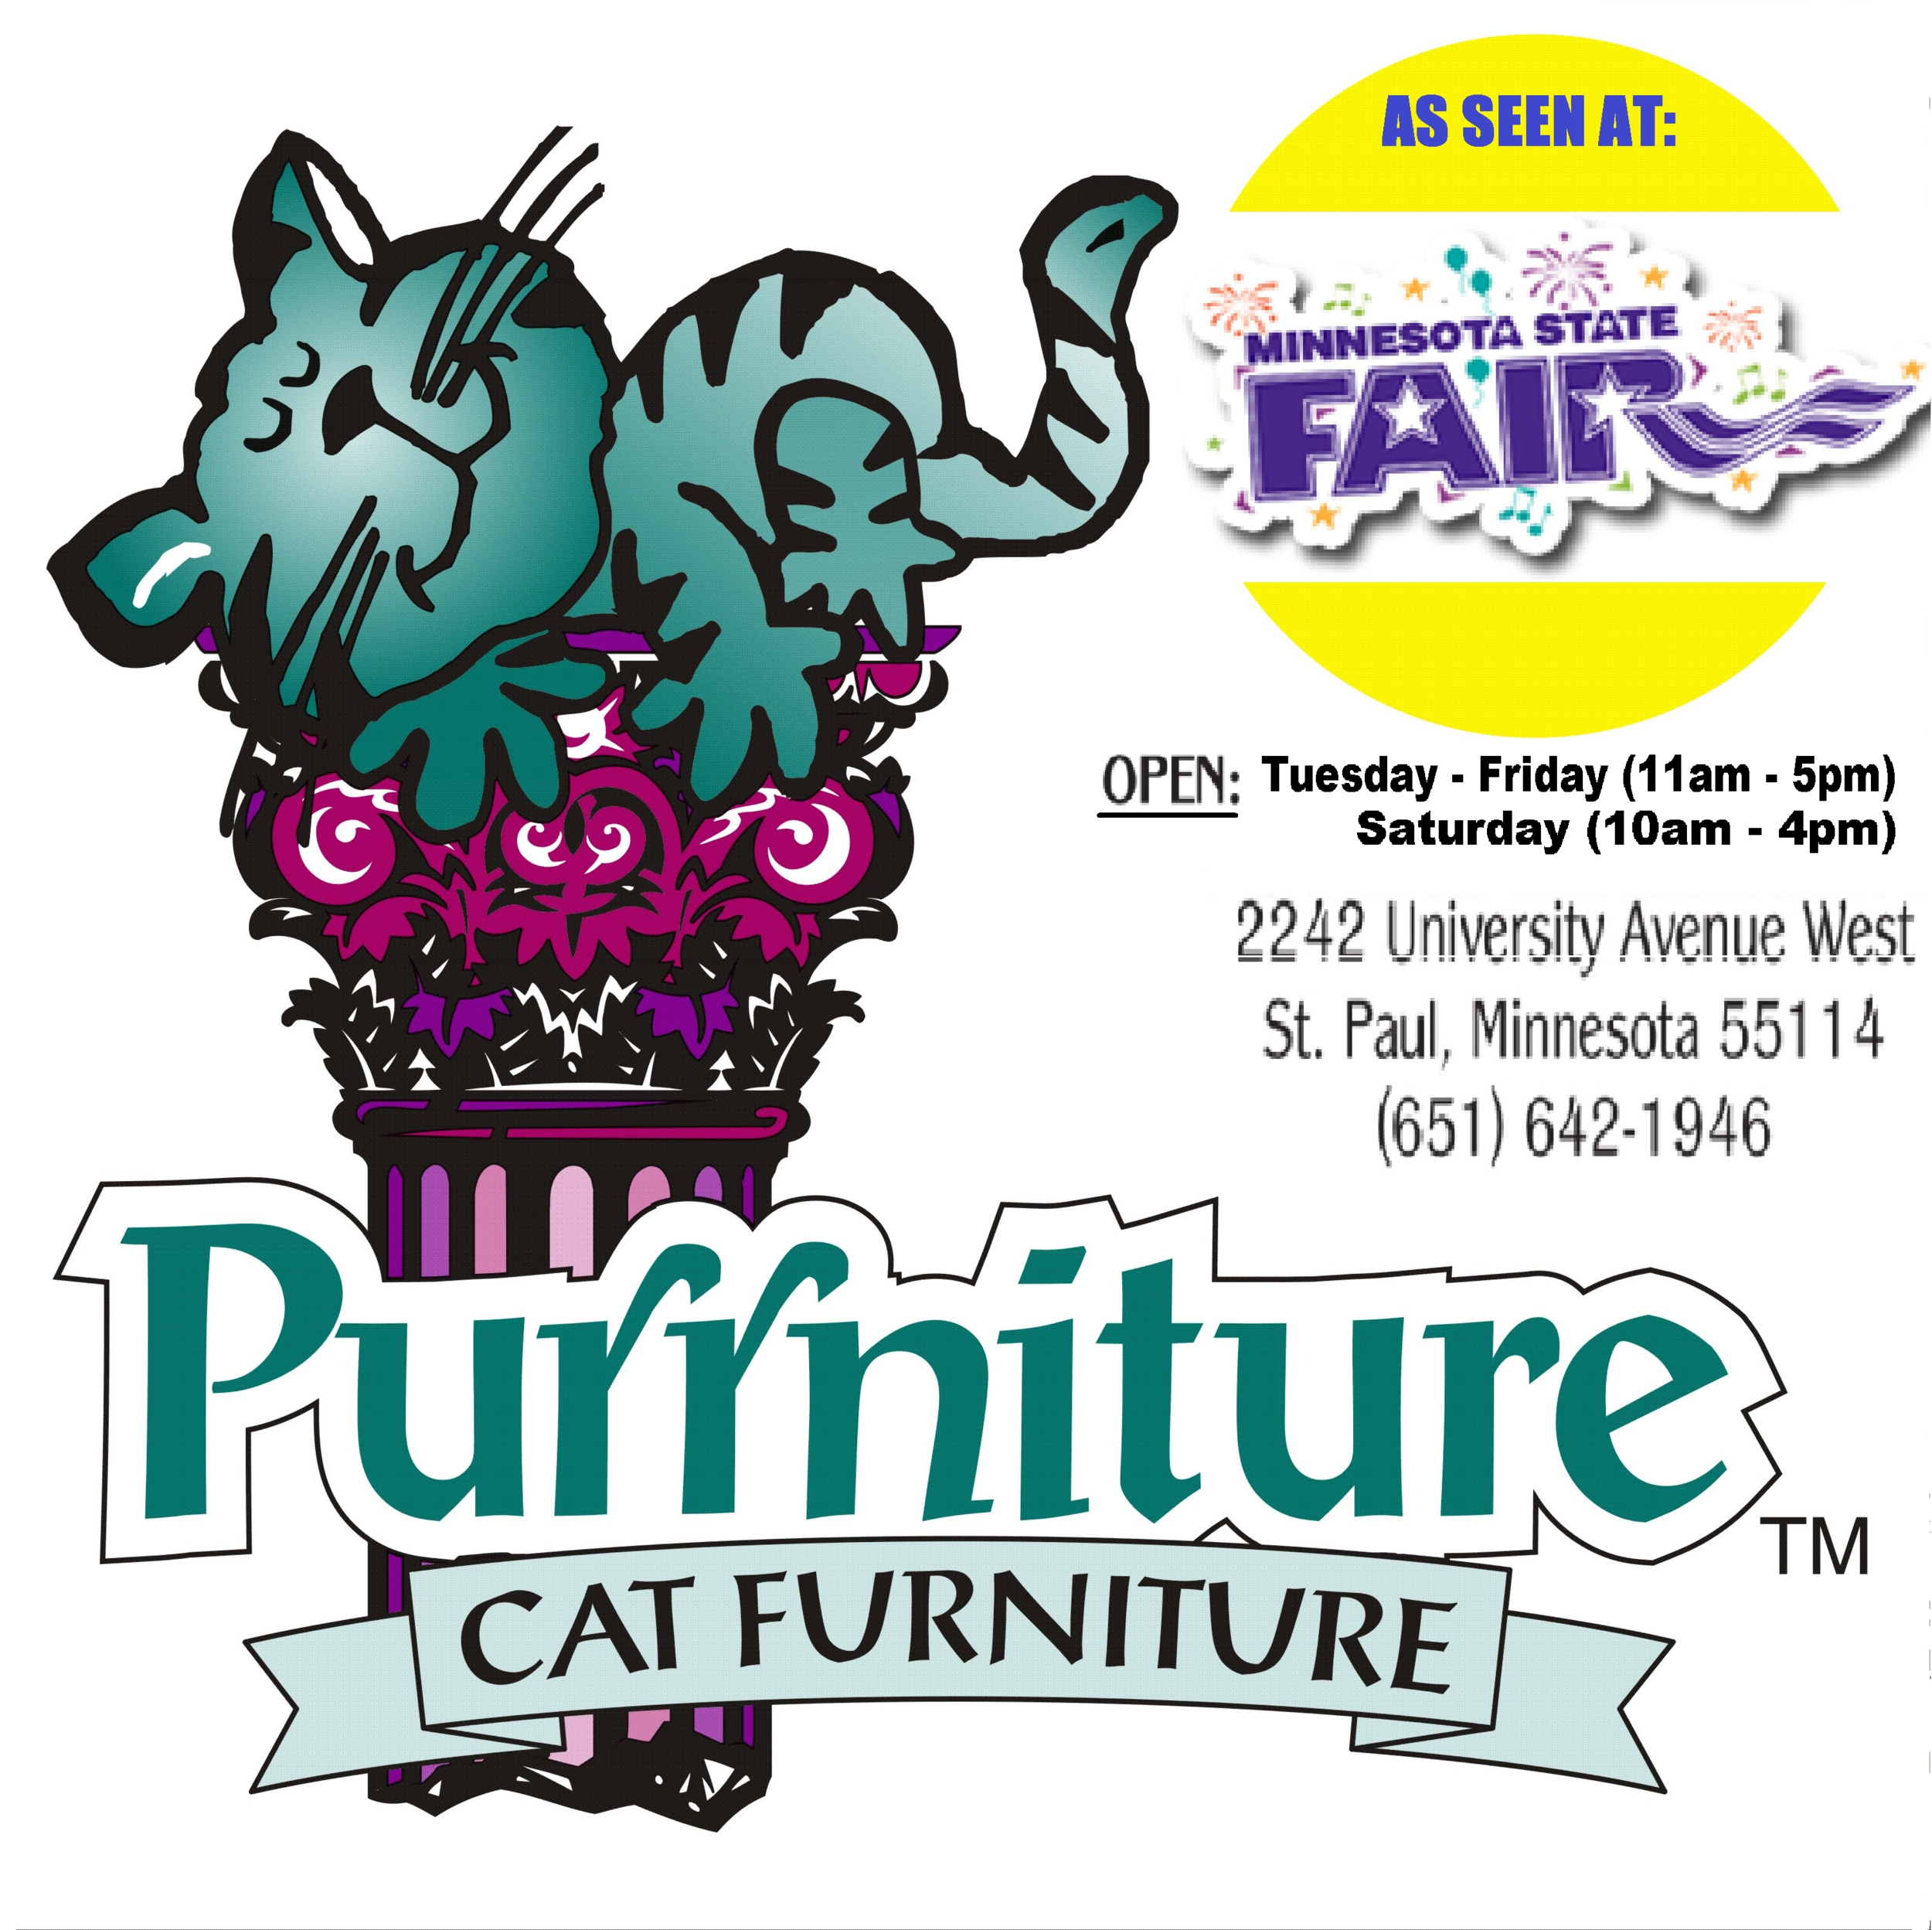 Purrrniture WEBSITE FRONT PAGE REALREALREALREAL.png